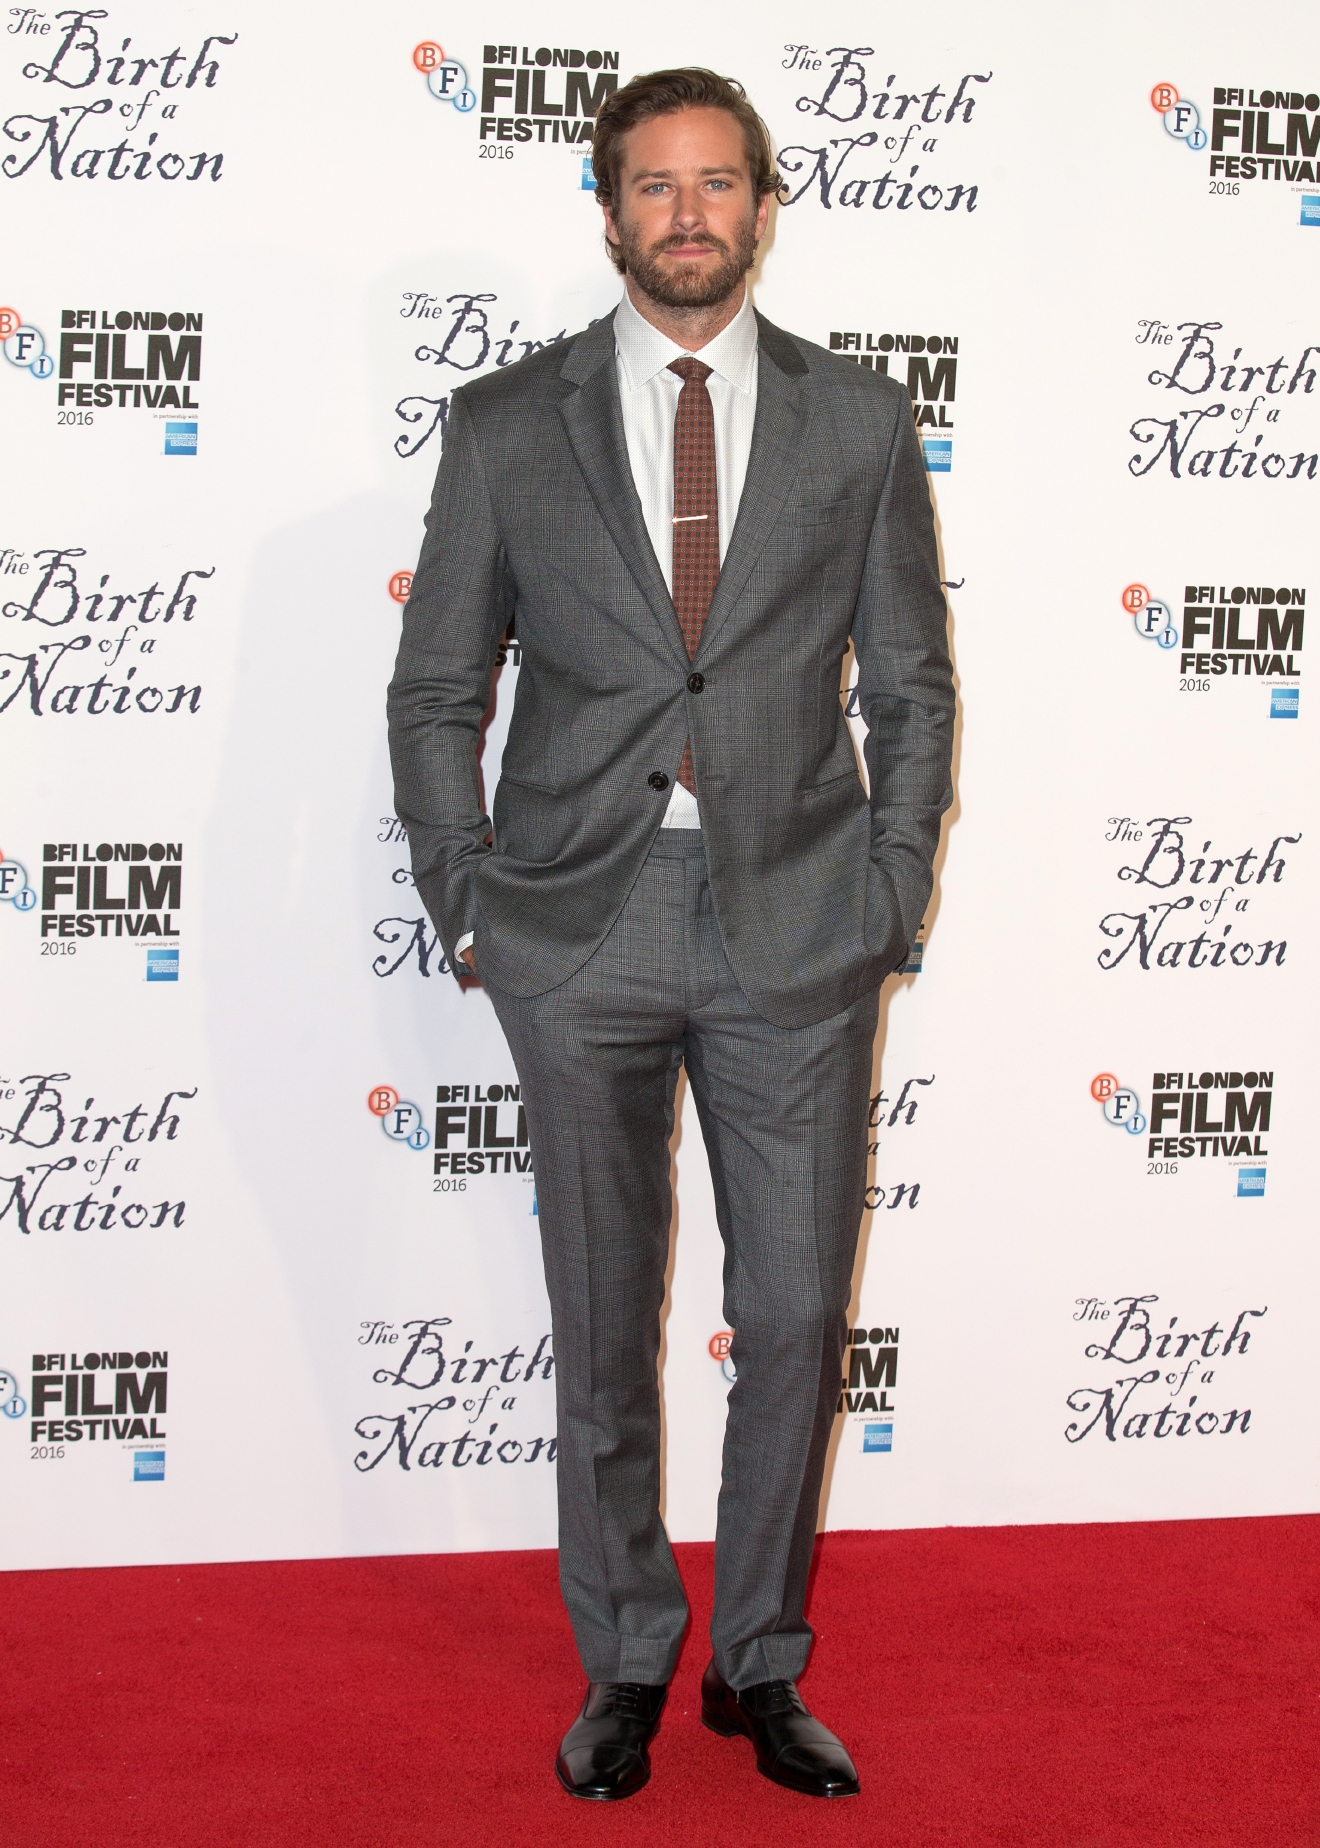 The BFI LLF  Headline Gala of 'Birth Of A Nation' held at the Odeon Leicester Square - Arrivals                                    Featuring: Armie Hammer                  Where: London, United Kingdom                  When: 11 Oct 2016                  Credit: Mario Mitsis/WENN.com